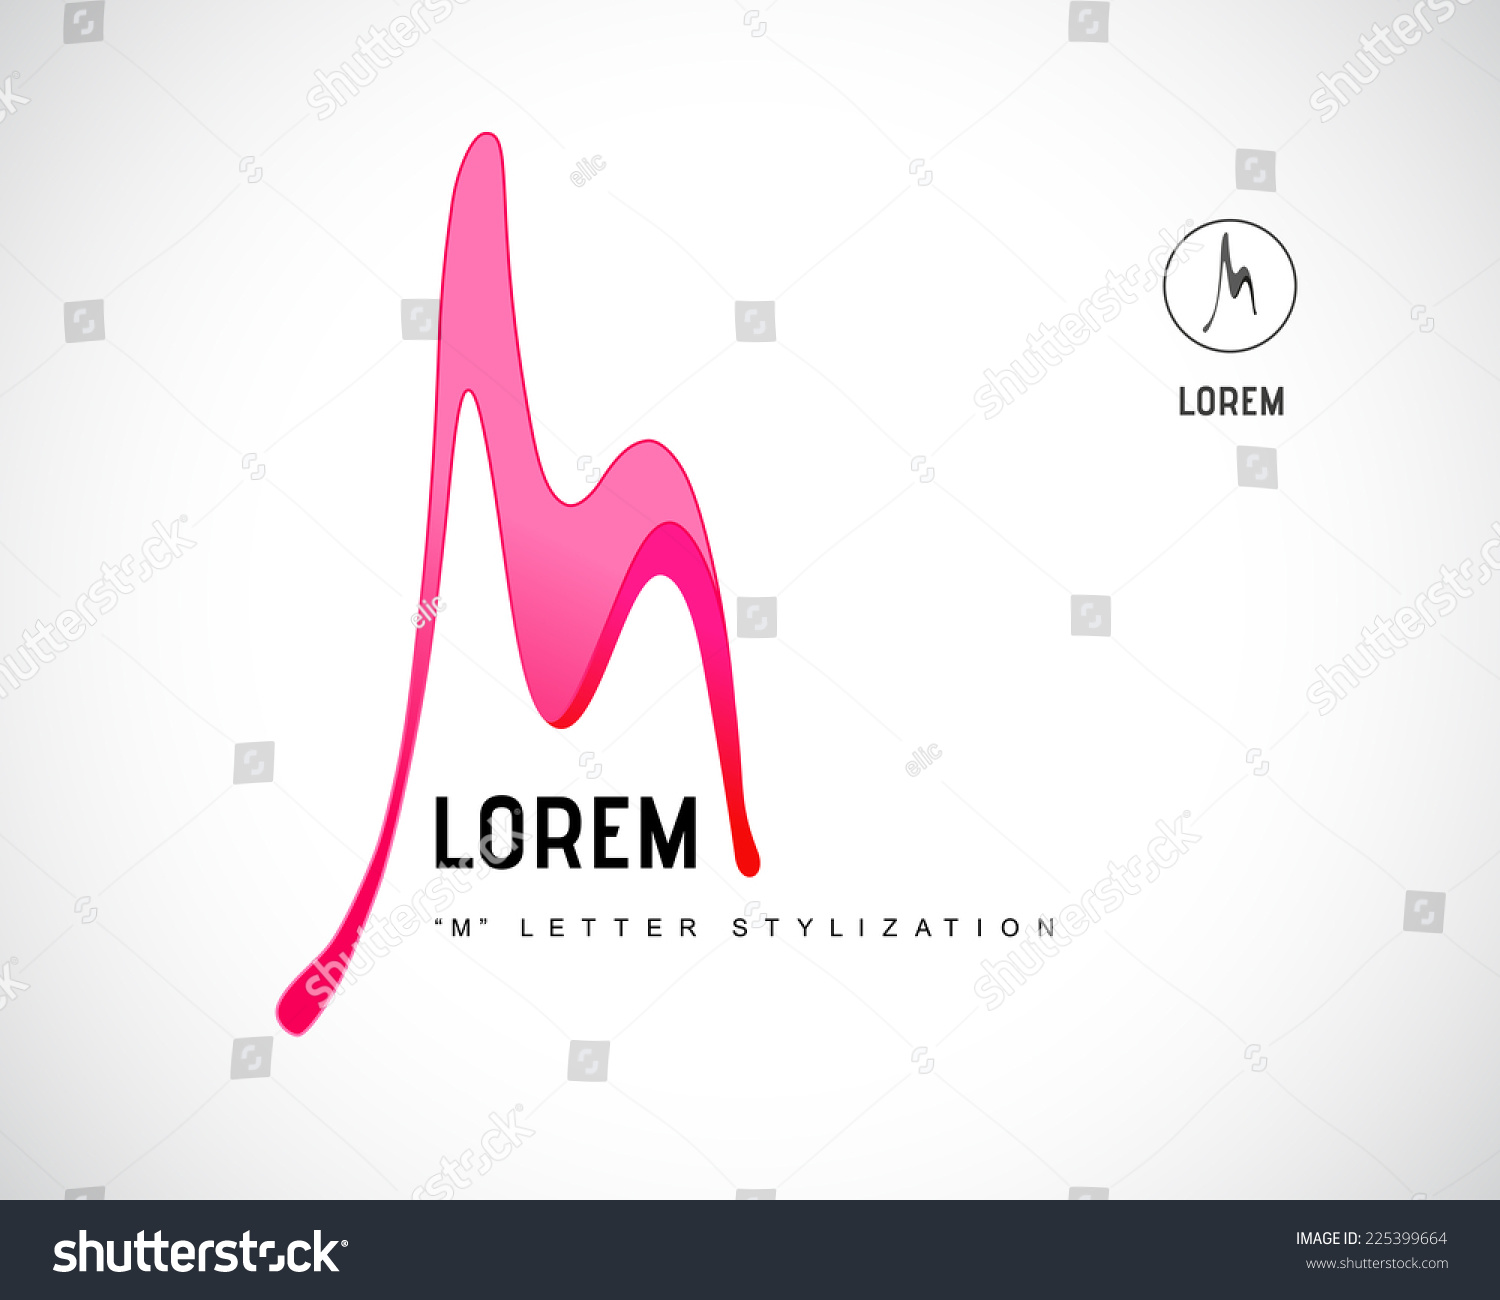 letter m logo stock vector image 63388199 abstract vector logo design template creative stock vector 822